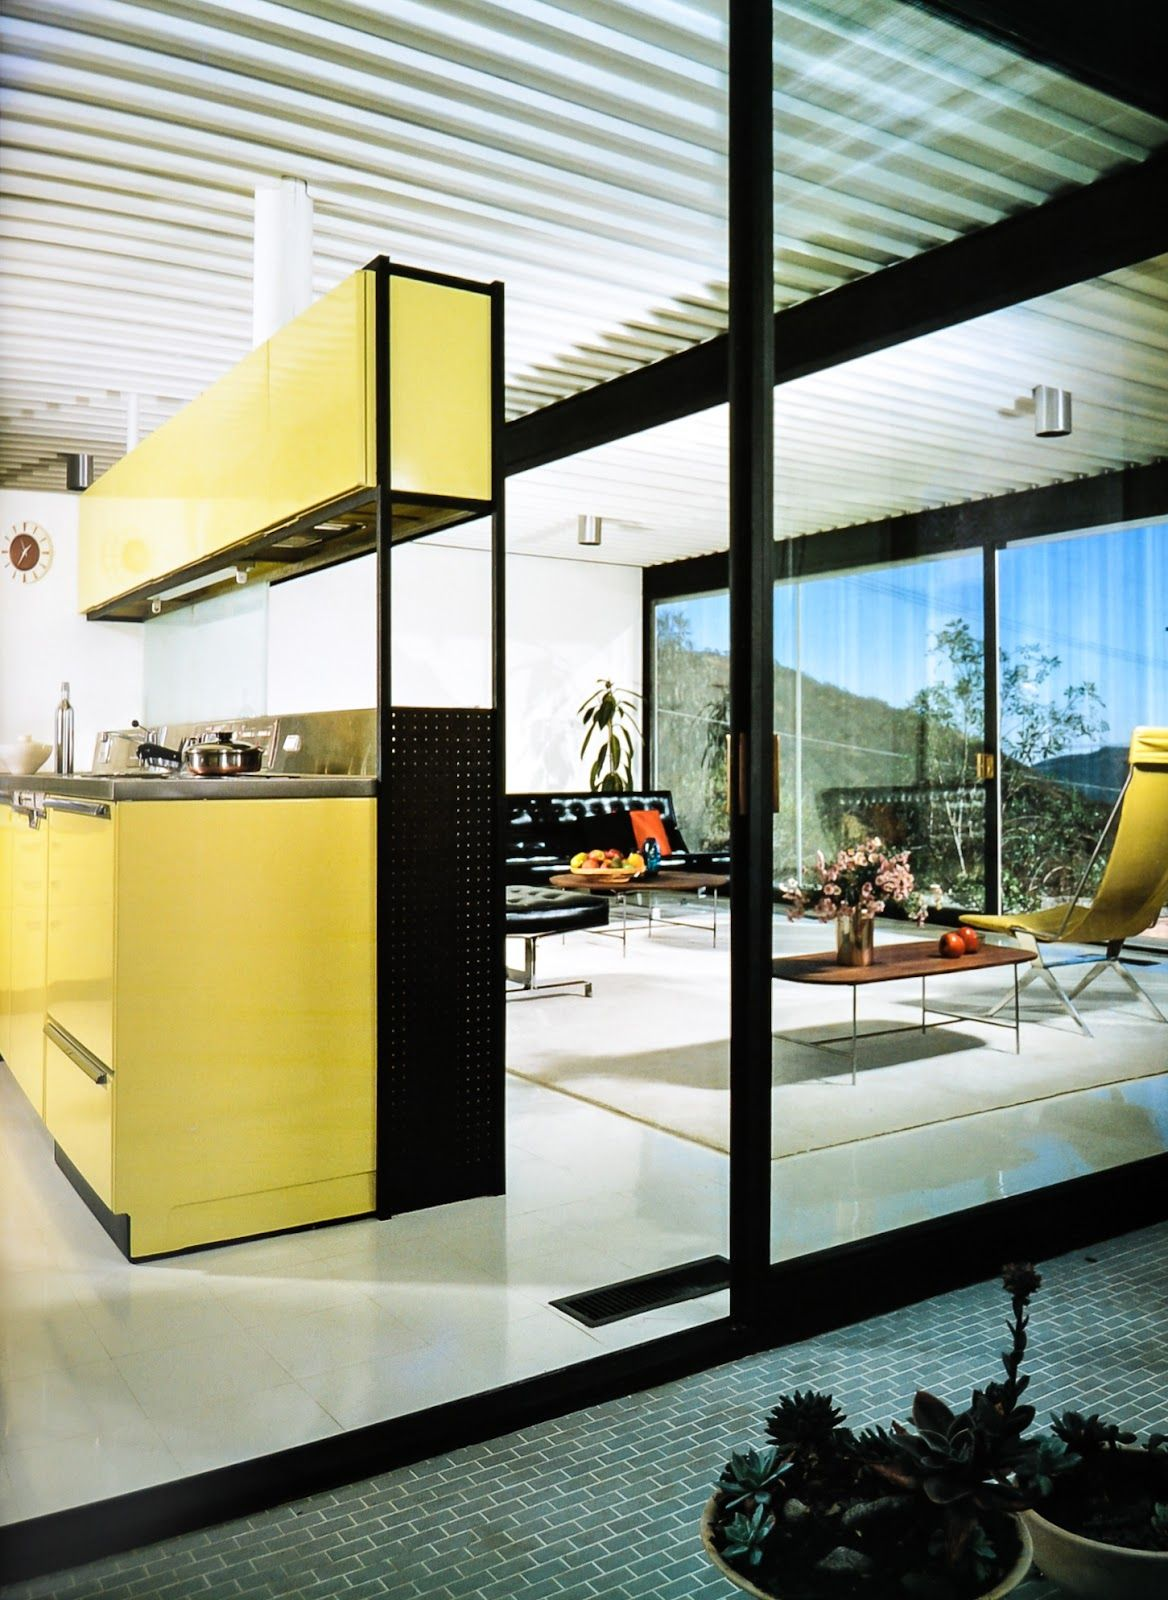 ARQ Ltd is an Indian company based in Greater Noida, which ...